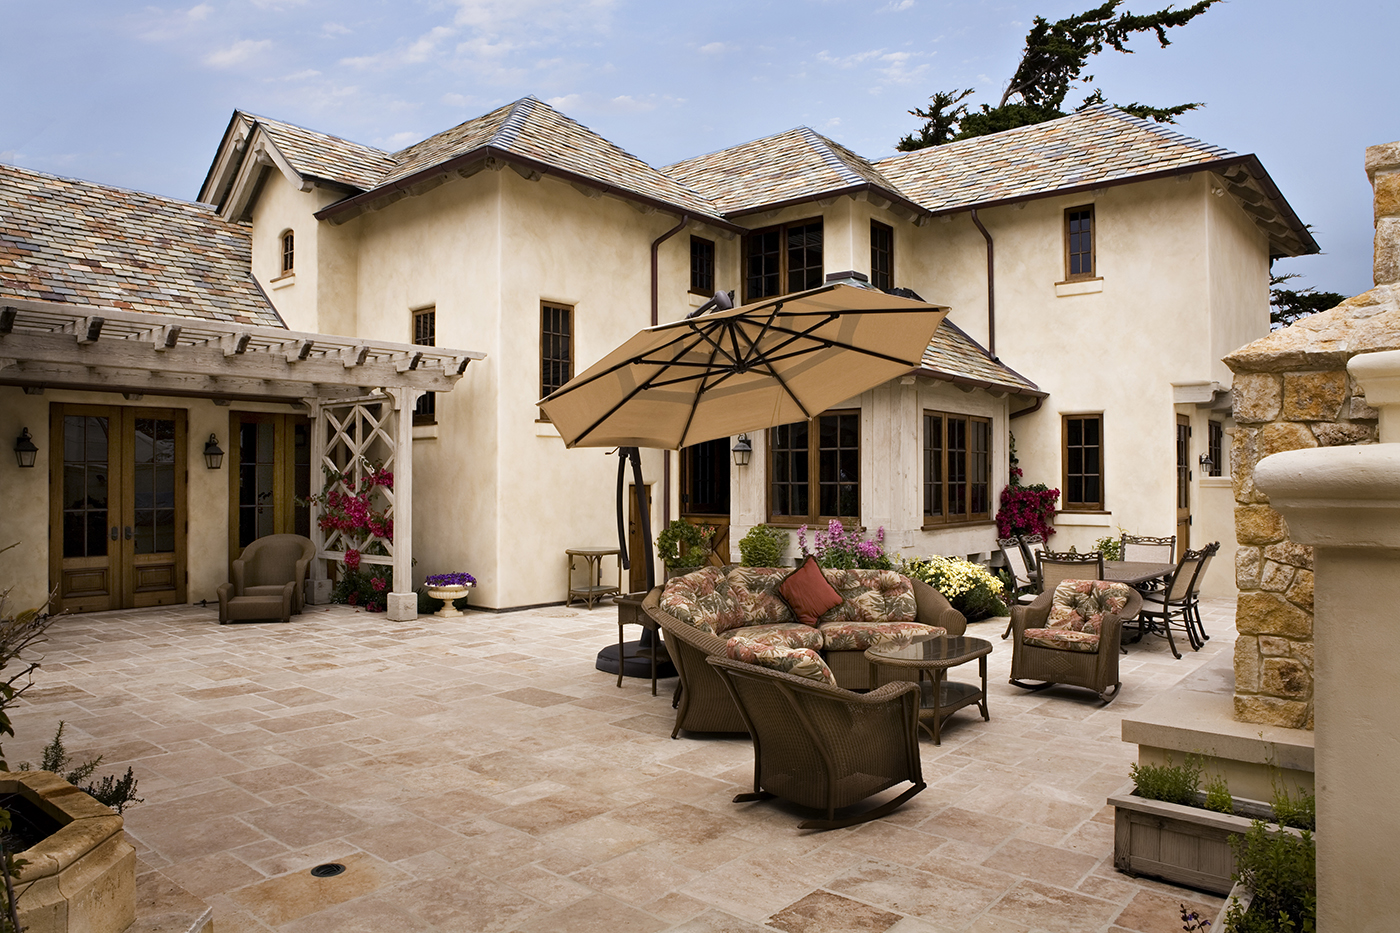 8-Smith-Sunny Courtyard with limestone pavers and redwood trellis.jpg